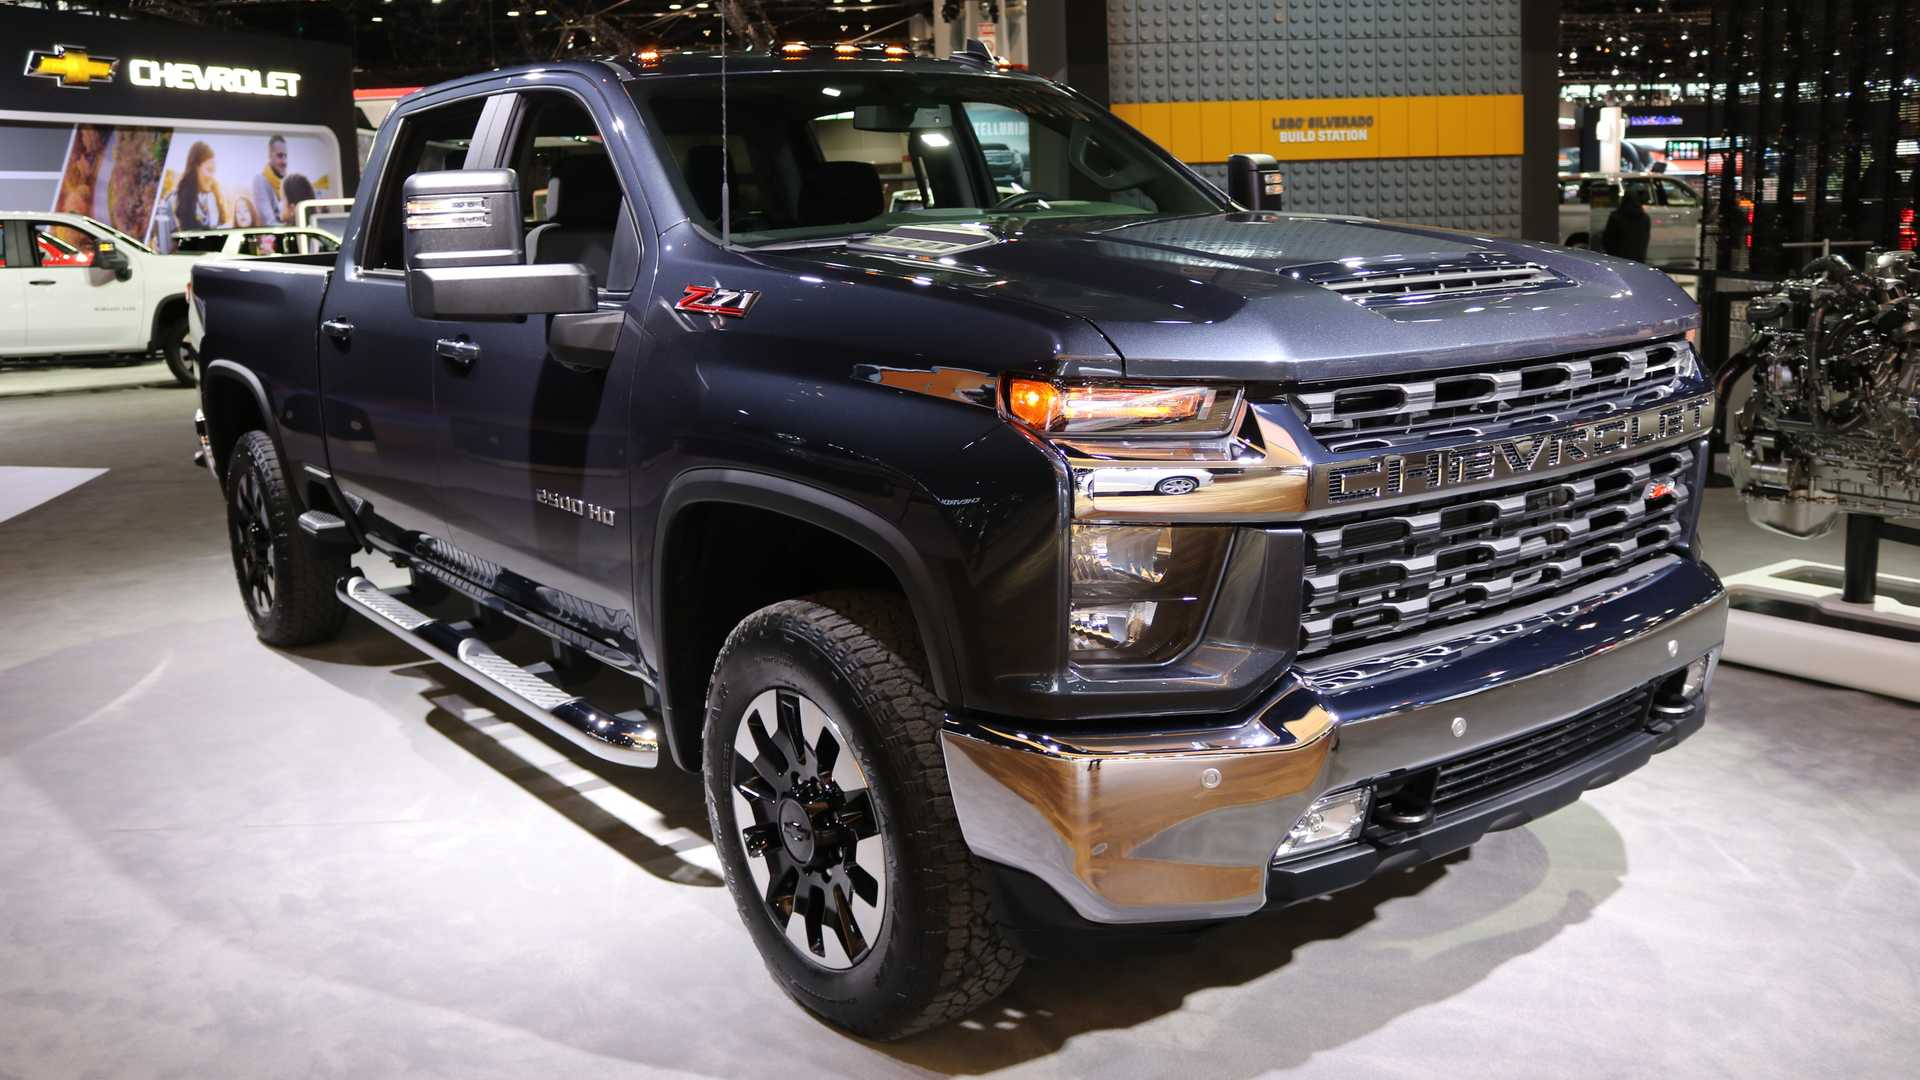 67 New 2020 Chevrolet 2500 Gas Engine Redesign and Concept by 2020 Chevrolet 2500 Gas Engine